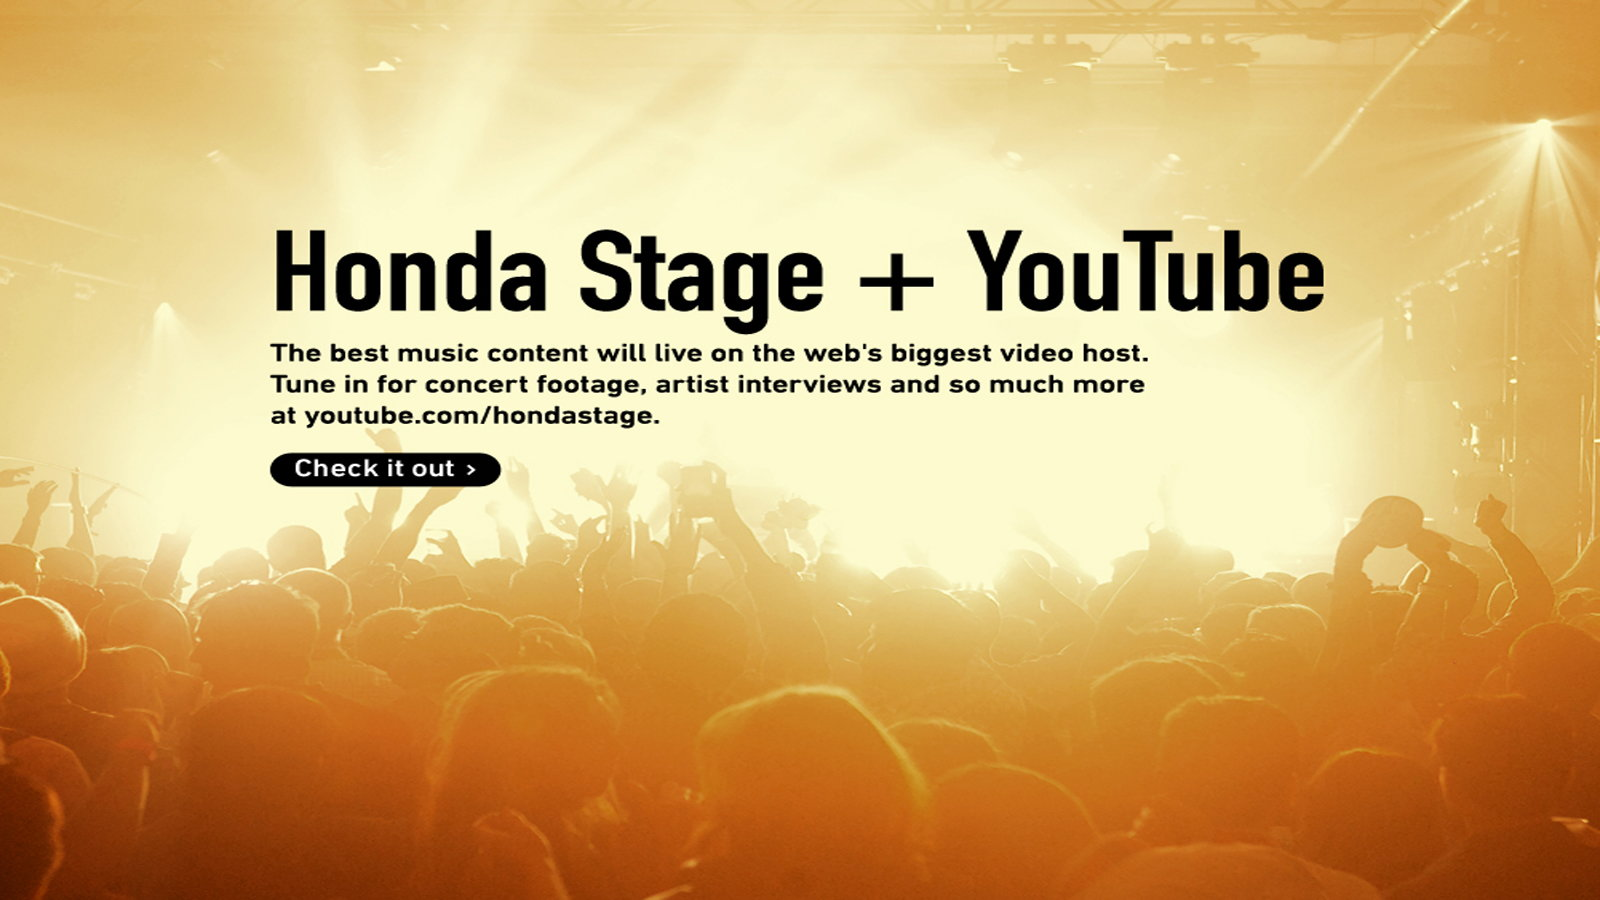 The Honda Stage Website and YouTube Channel